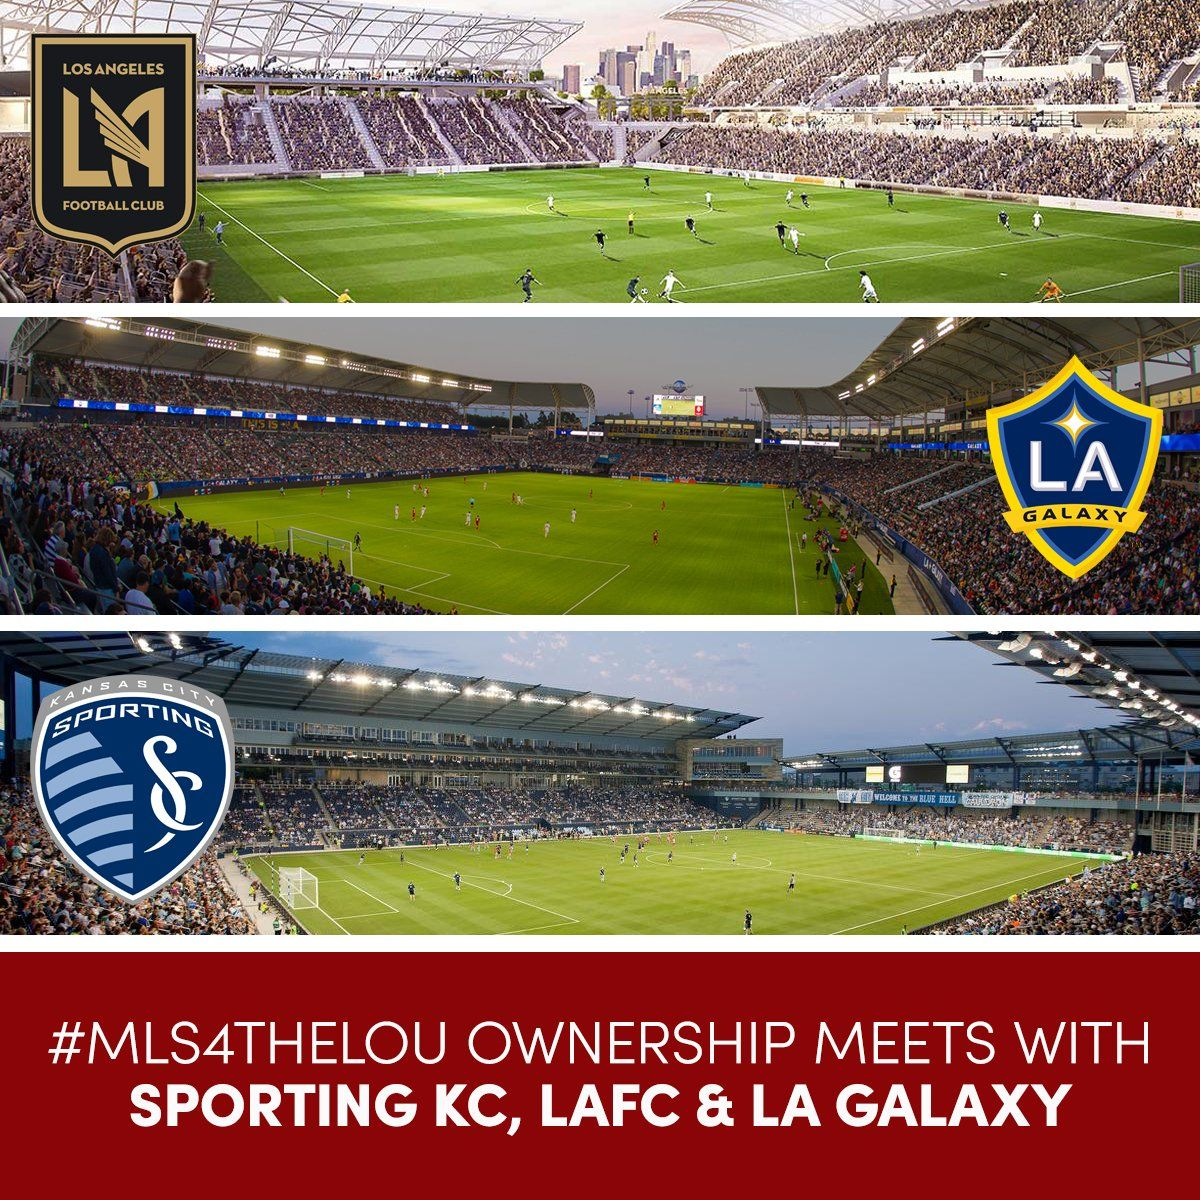 porting KC, LA Galaxy and LAFC have created winning team